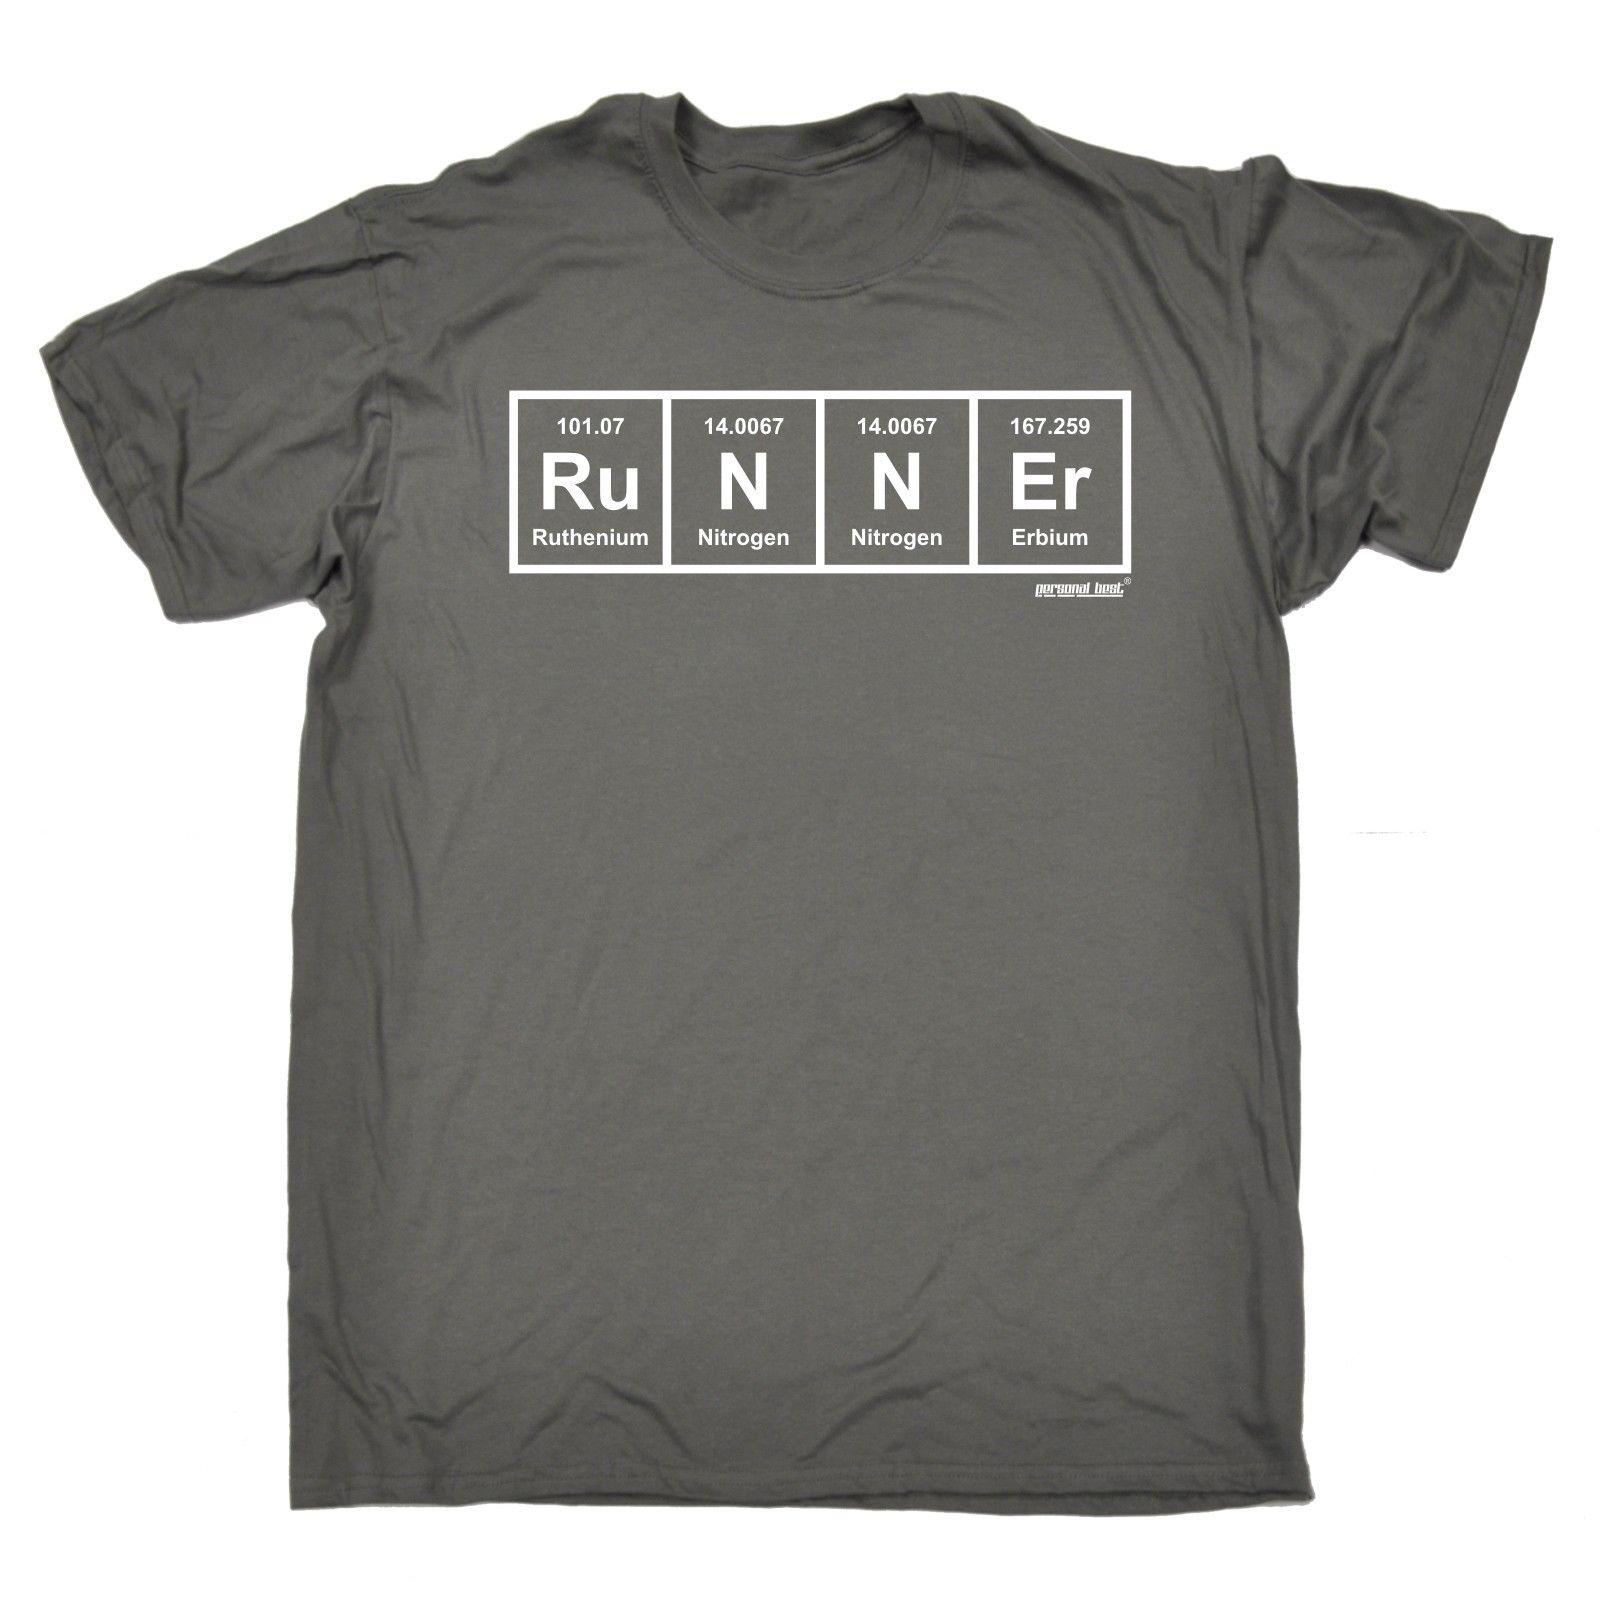 Runner Periodic T SHIRT Running Jogger Sprint Race Science Gym Birthday Gift Tshirt And Shirt Shirts Cool From Tshirtmaniac 1101